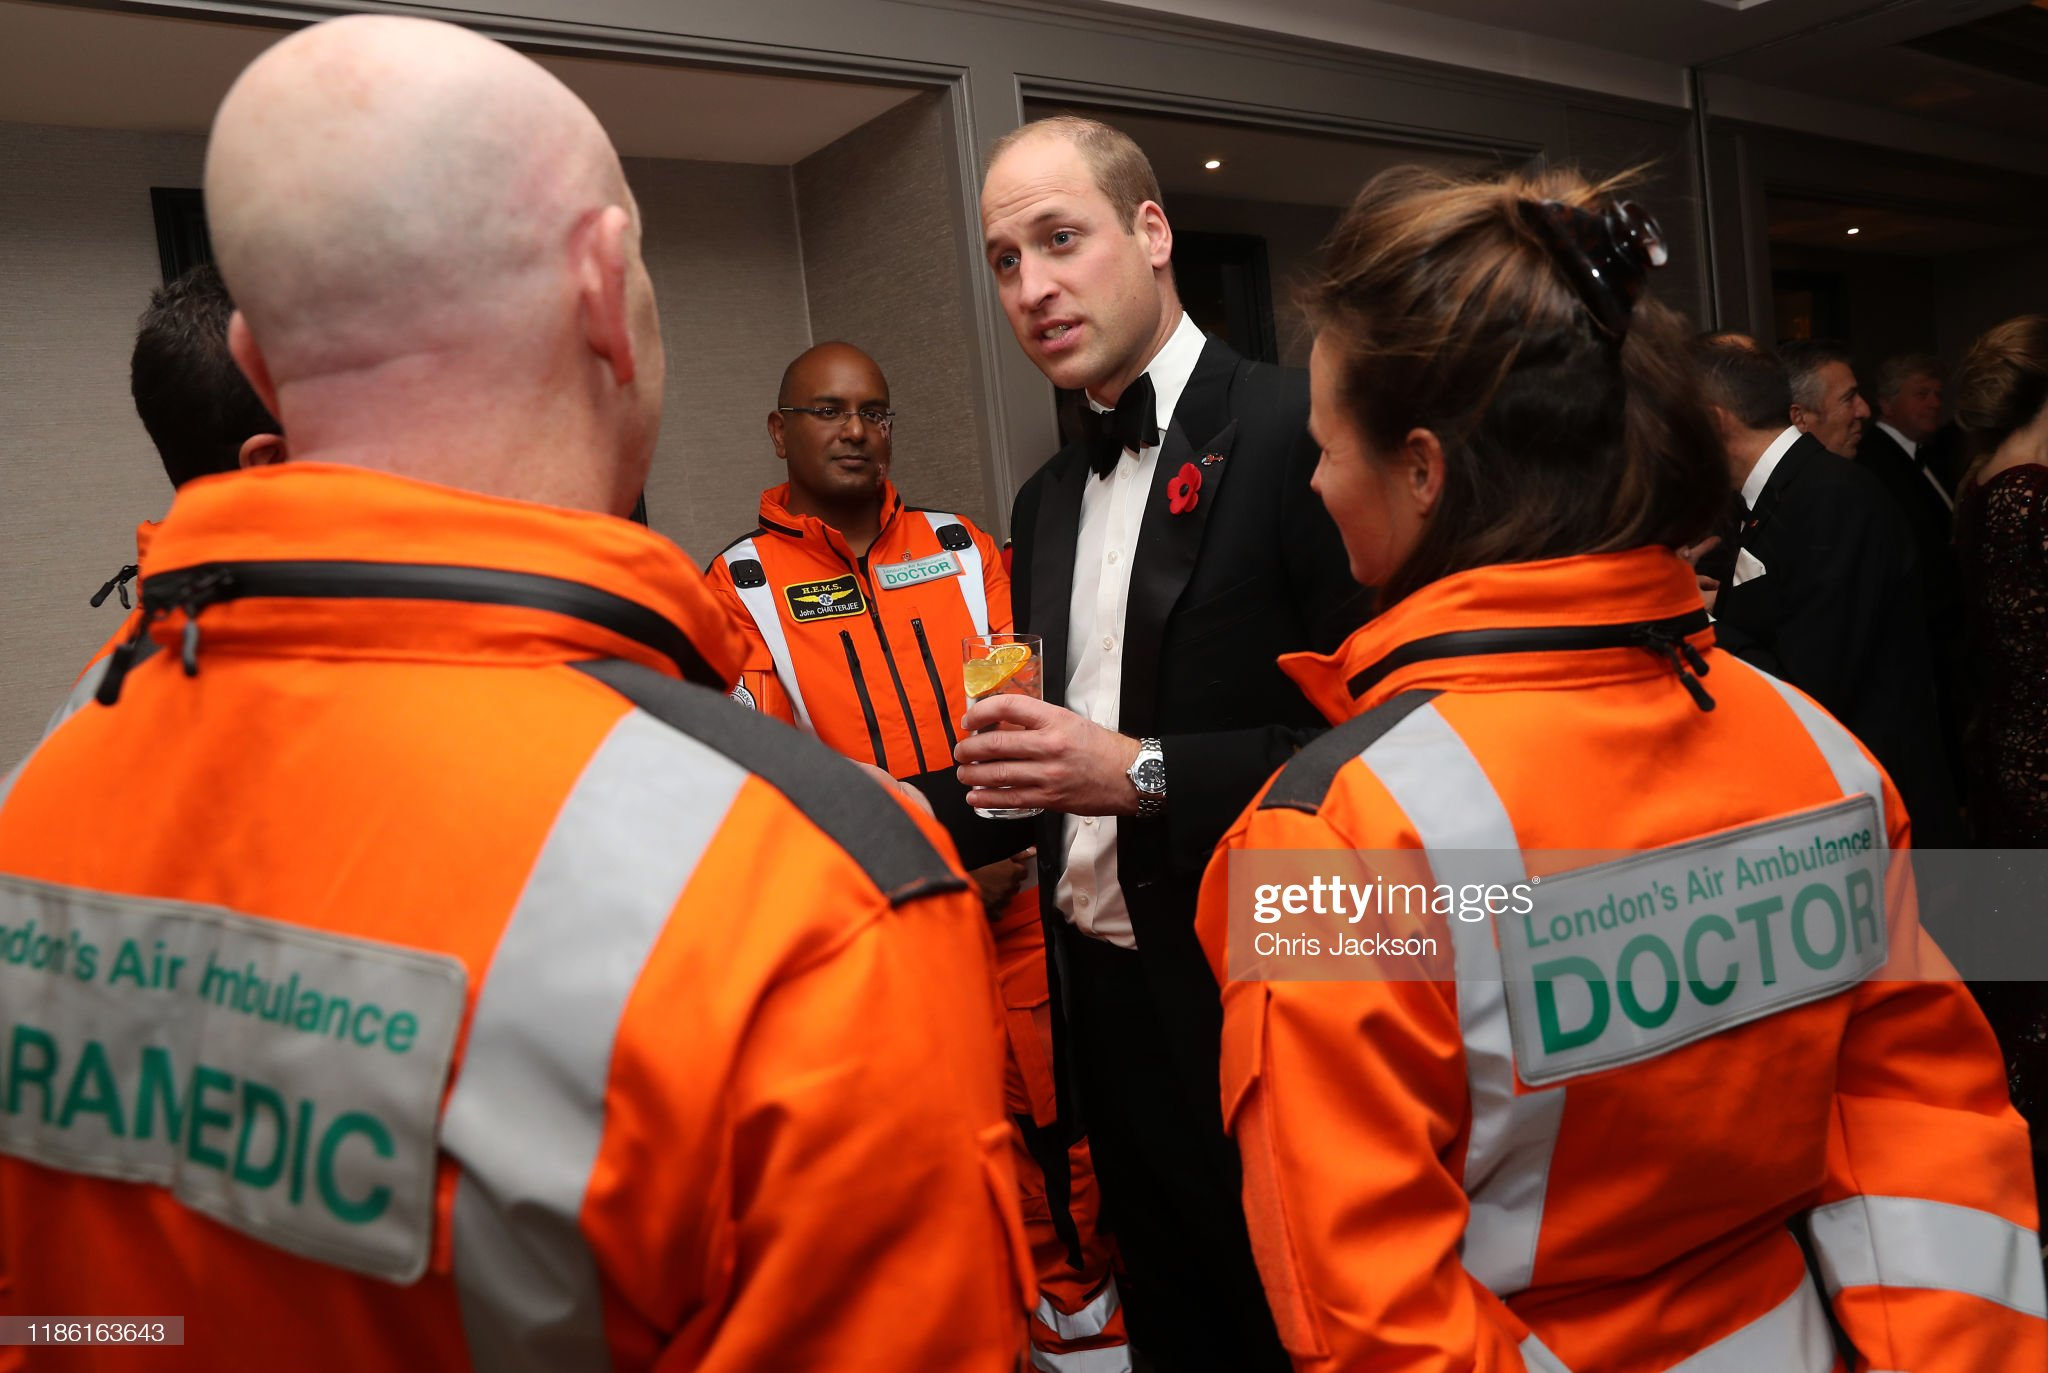 prince-william-duke-of-cambridge-speaks-with-doctor-flora-bird-in-picture-id1186163643